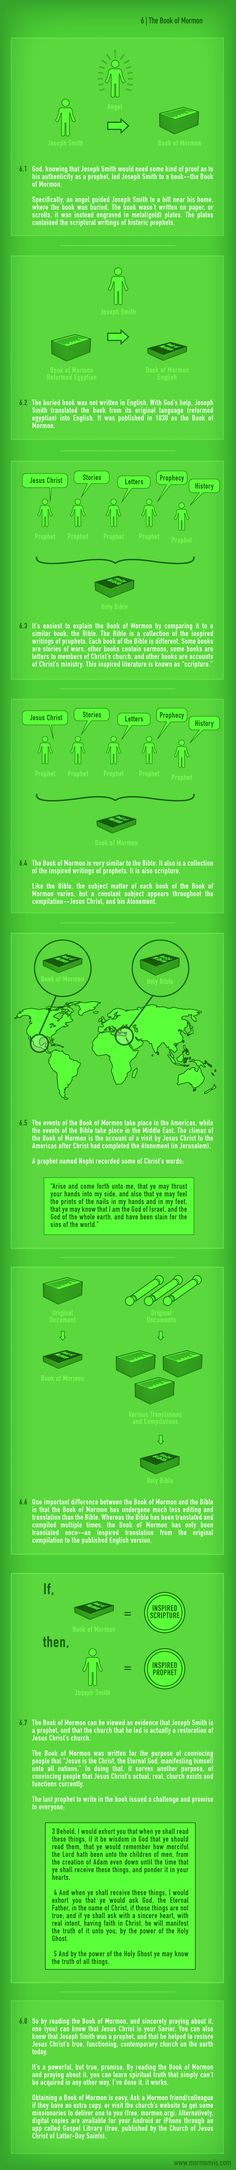 The Book of Mormon.  Part 6 of a series of basic explanations of Mormonism. (If you click the image it gets larger.)